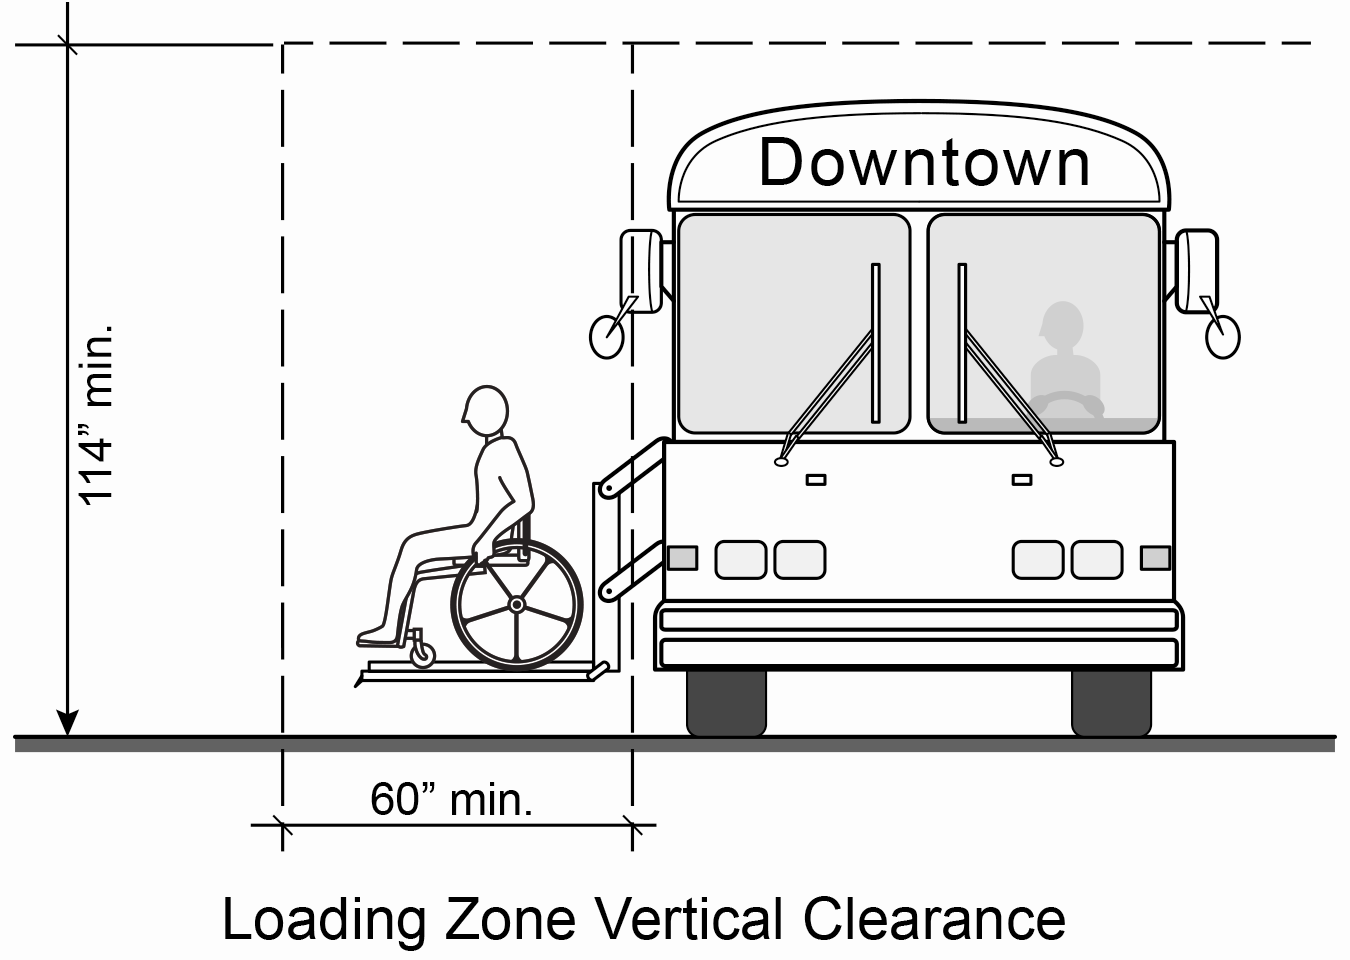 Figure 9: Bus stopped at loading zone with lift extended carrying individual in a wheelchair.